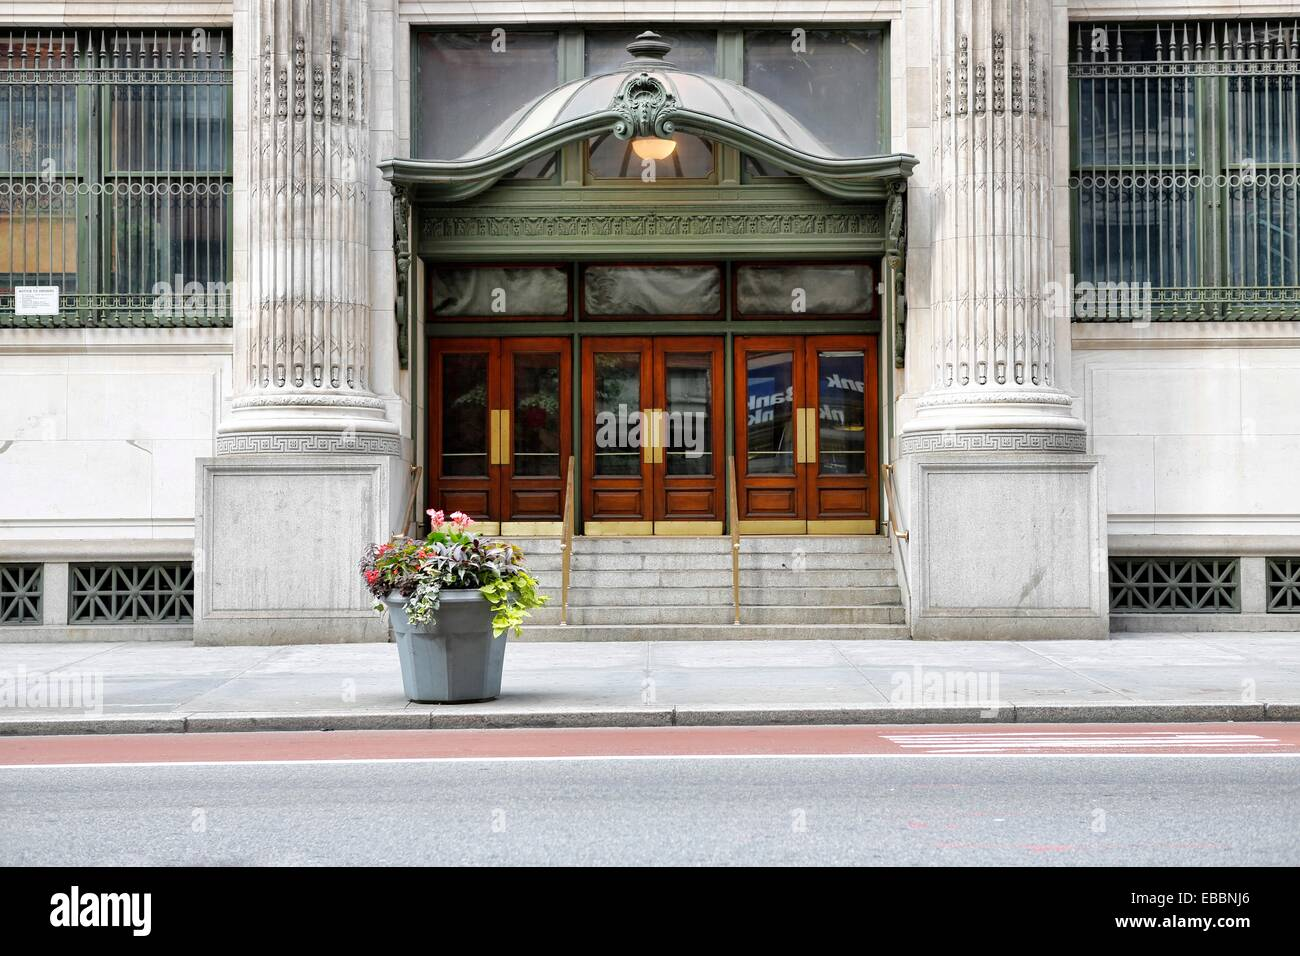 Majestic Beaux Arts Marquee Above Triple Doors & Majestic Beaux Arts Marquee Above Triple Doors Stock Photo: 75861134 ...